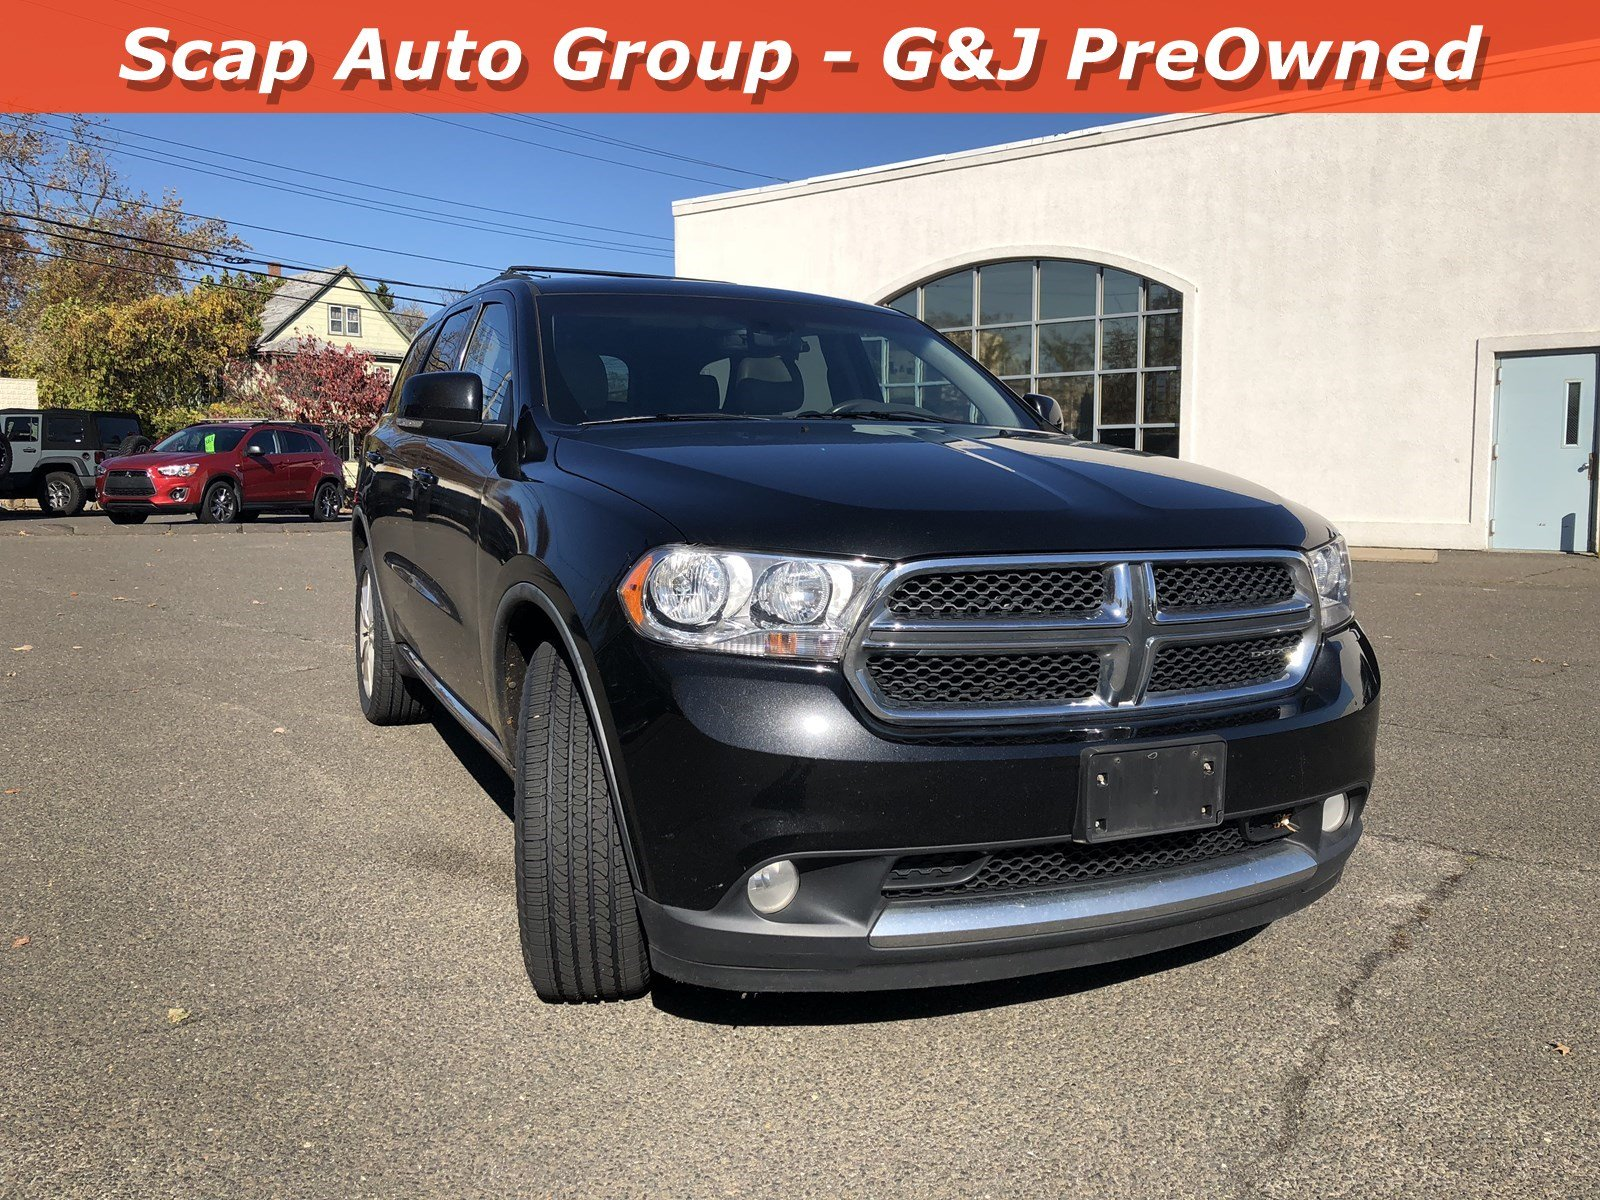 Used 2012 Dodge Durango Crew AWD  Crew for sale in Fairfield CT